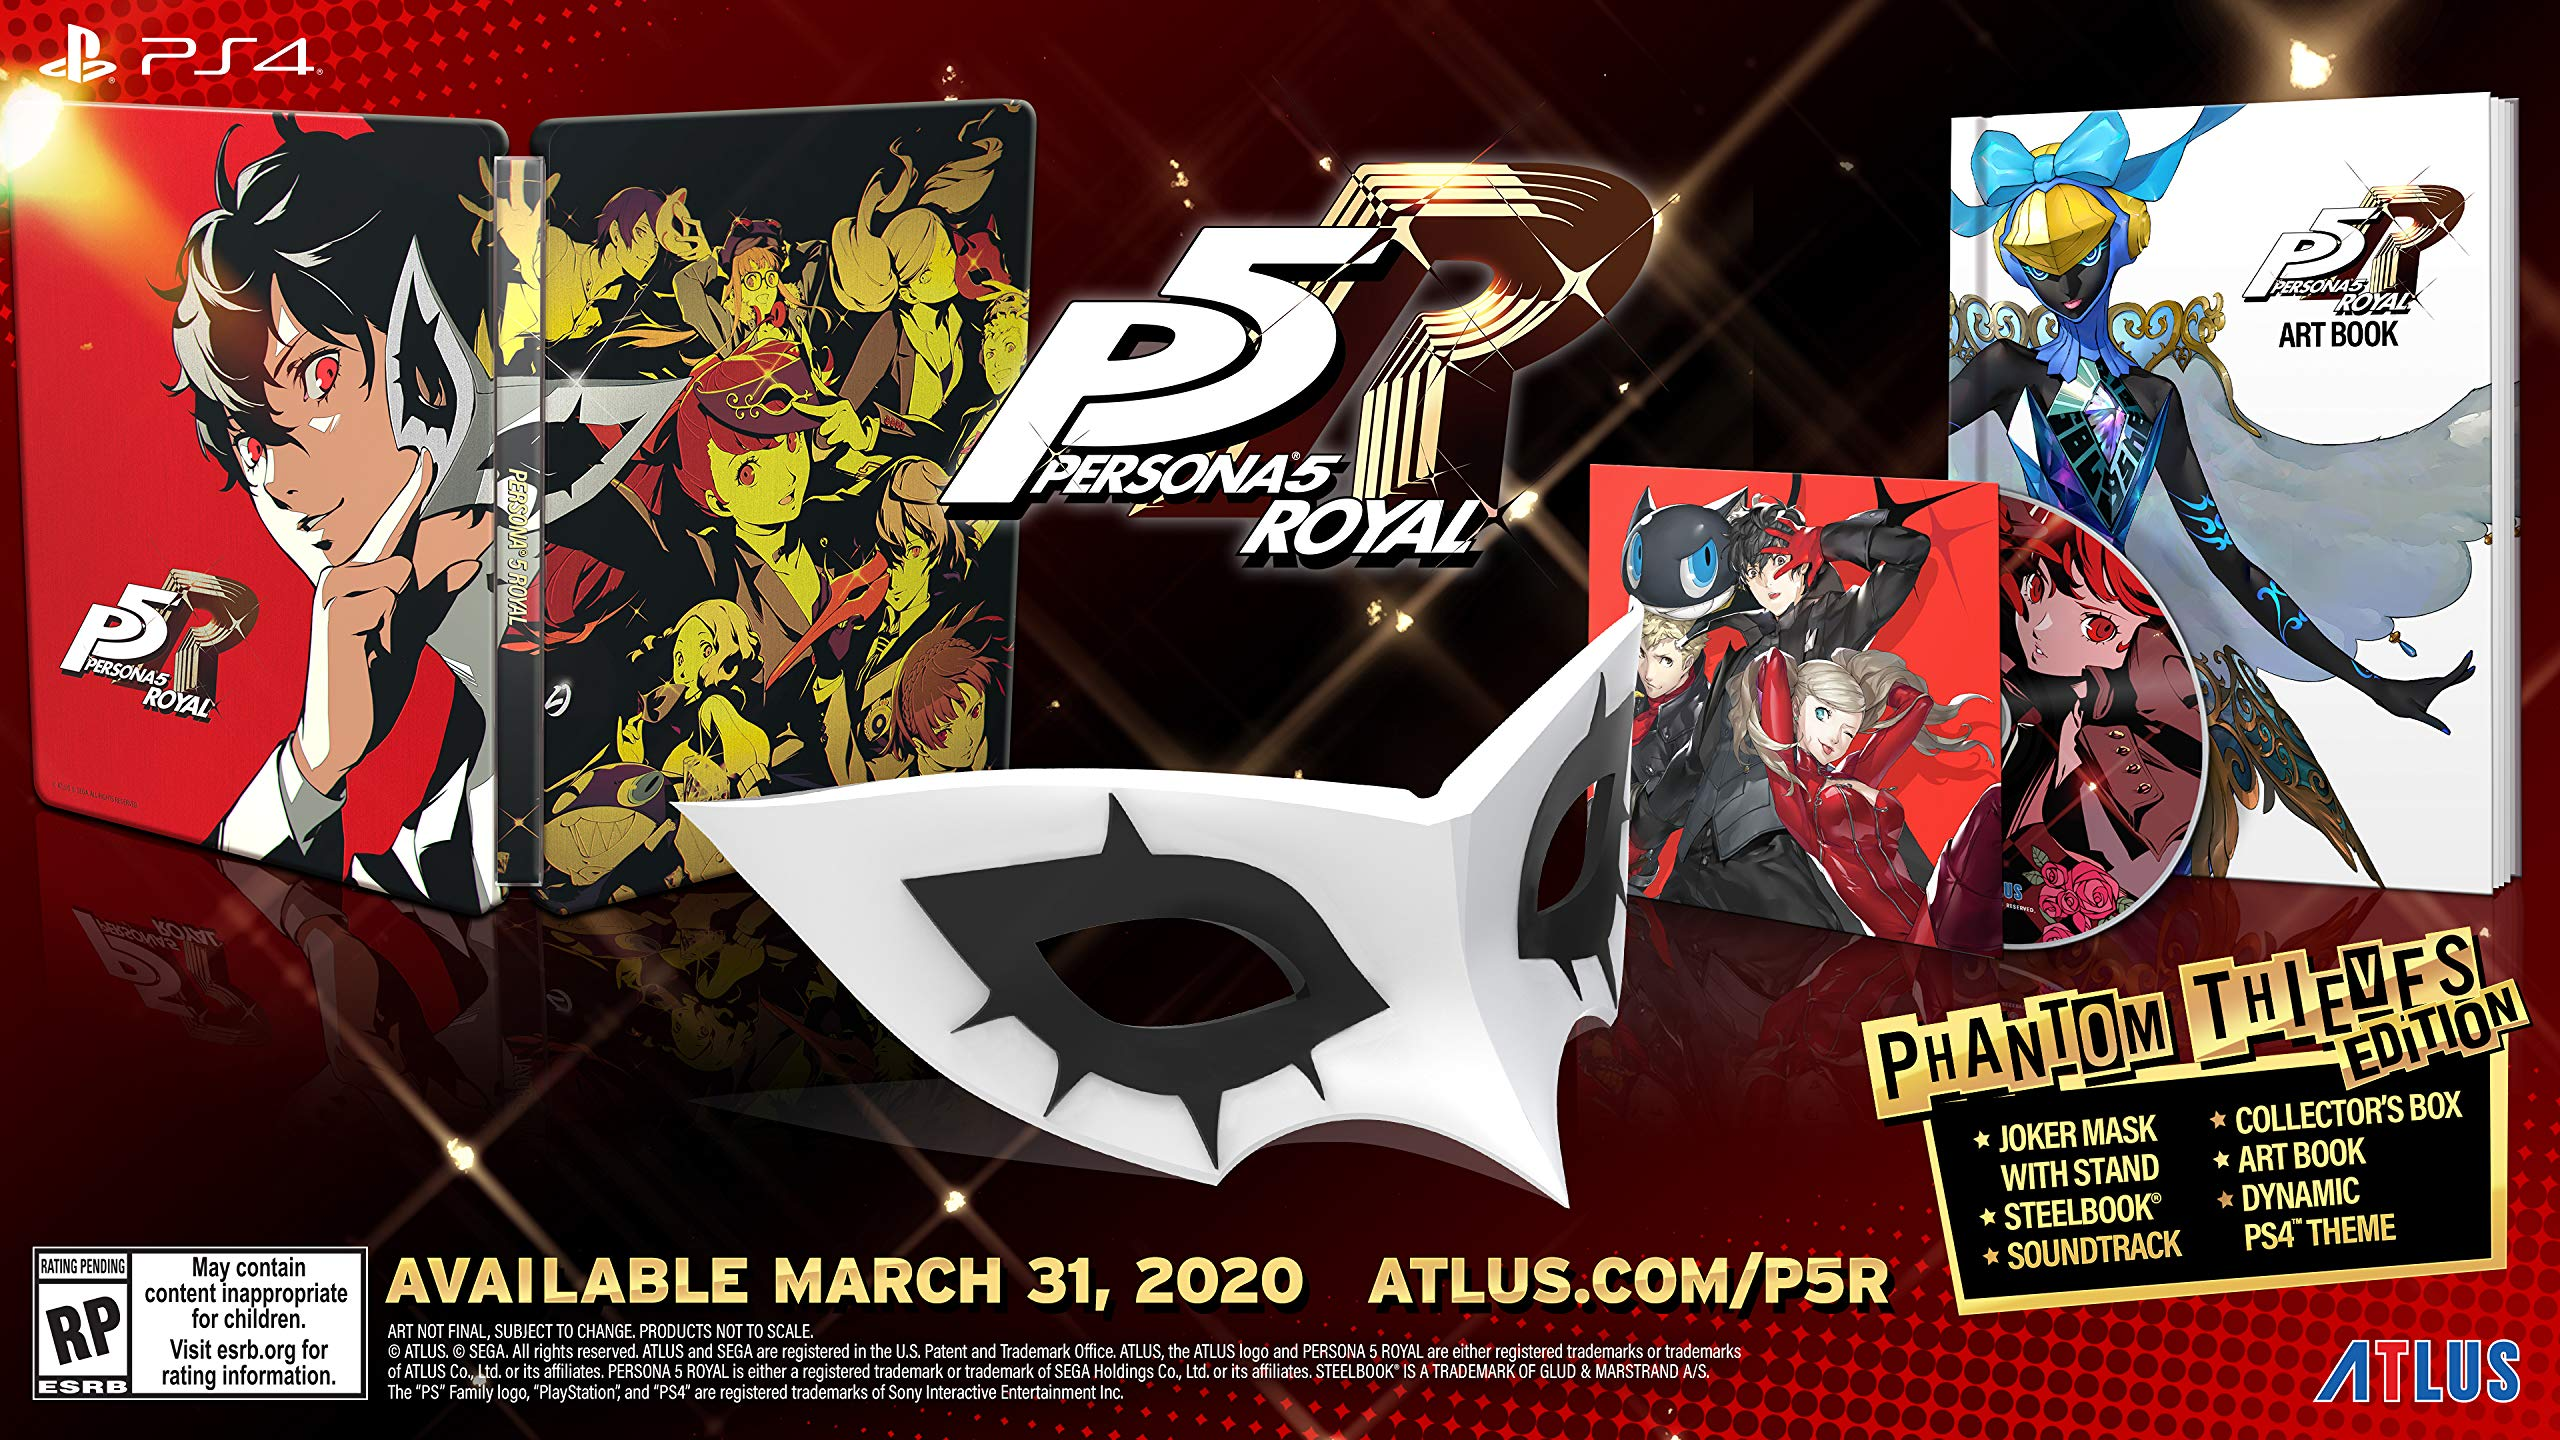 Free Psn Games March 2020.Persona 5 Royal Launches March 31 2020 In The West Gematsu